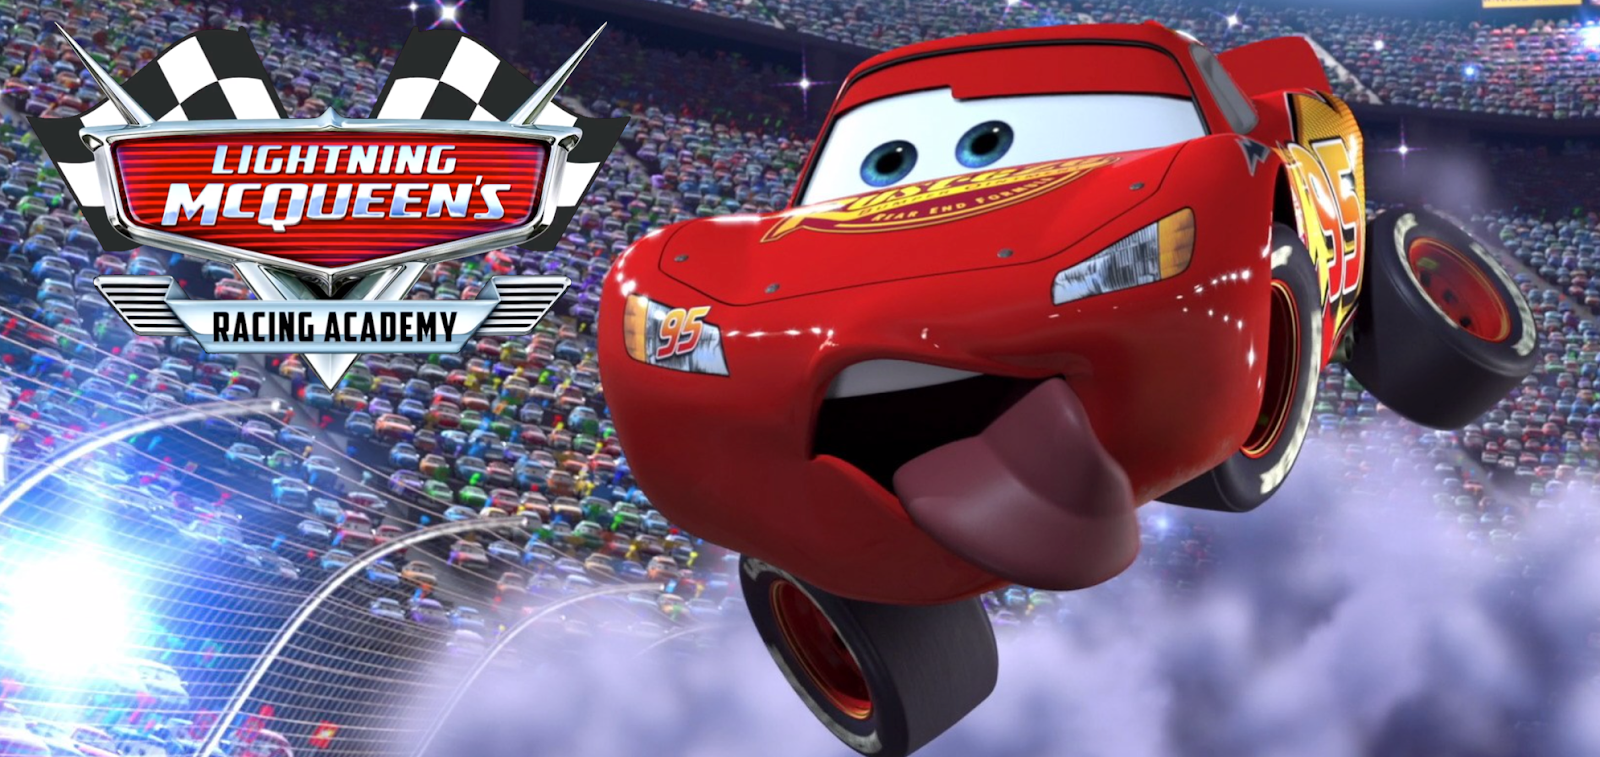 Lightning Mcqueen S Racing Academy To Open At Disney S Hollywood Studios March 31 2019 Pixar Post